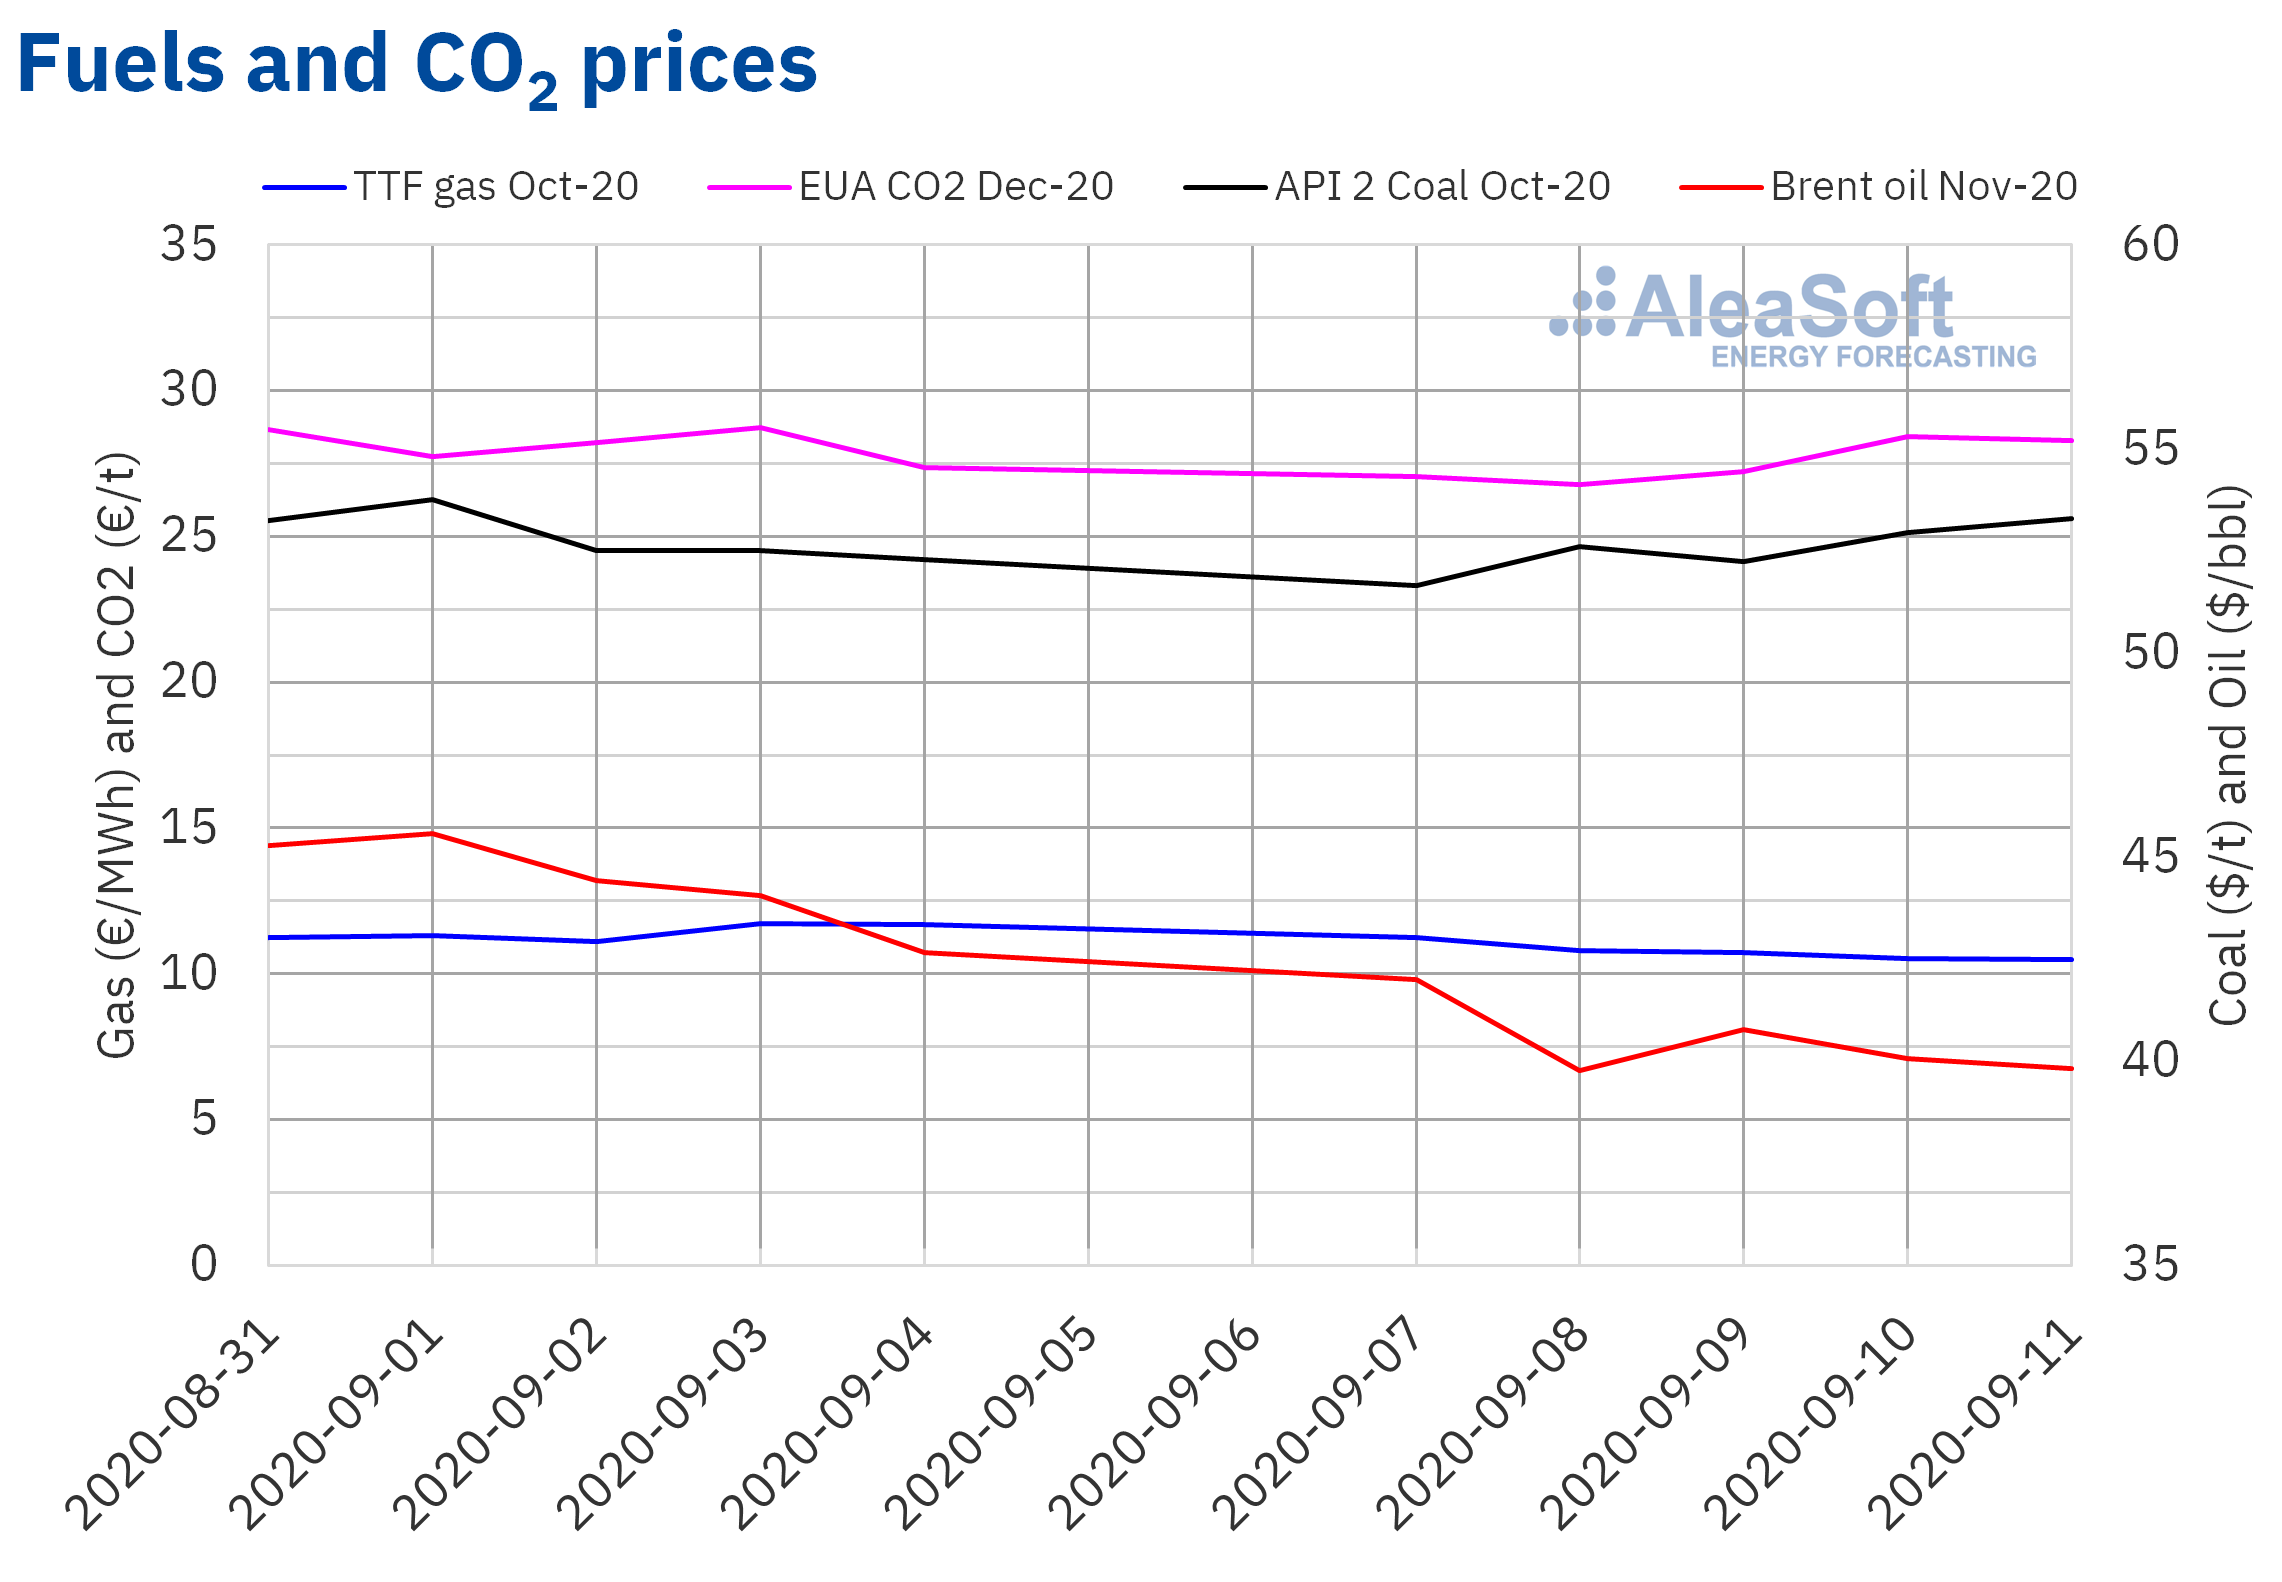 AleaSoft - Prices of gas coal, Brent oil and CO2